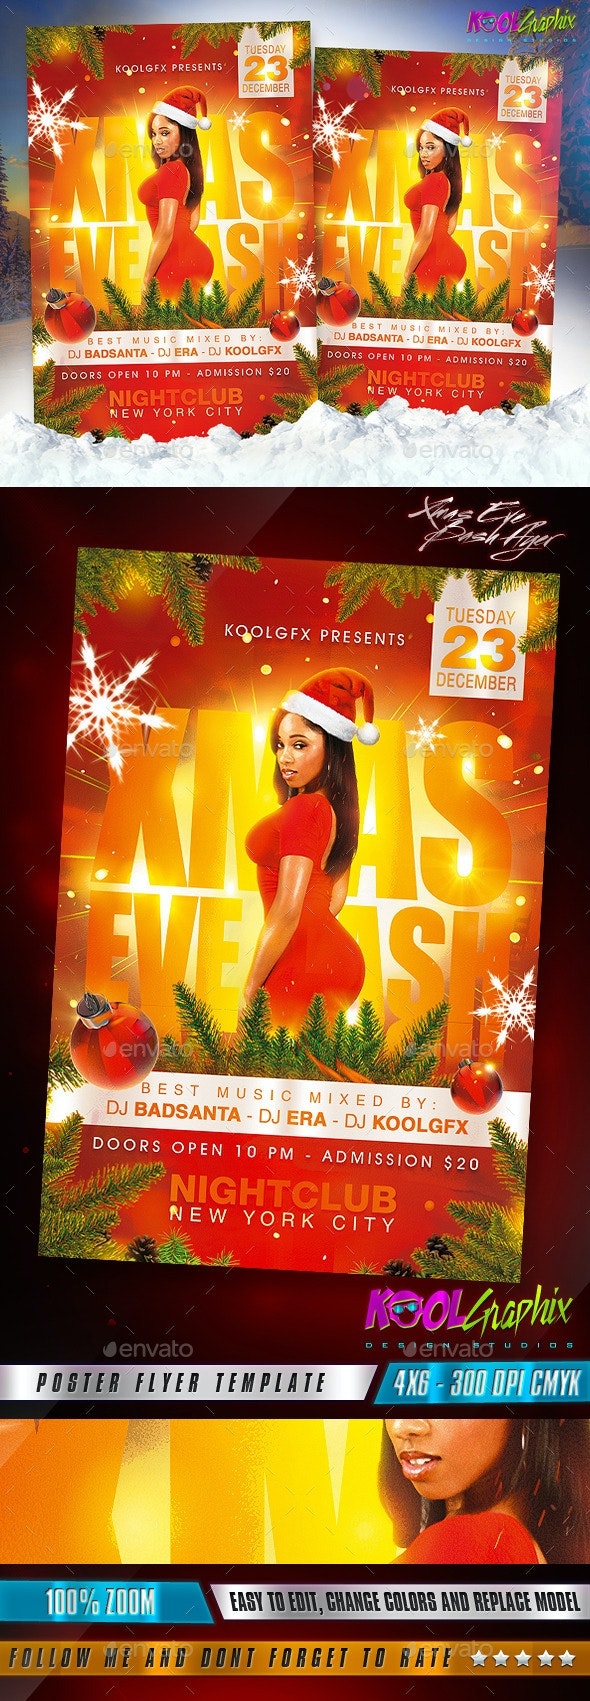 Xmas Eve Bash Party Flyer Template - Holidays Events